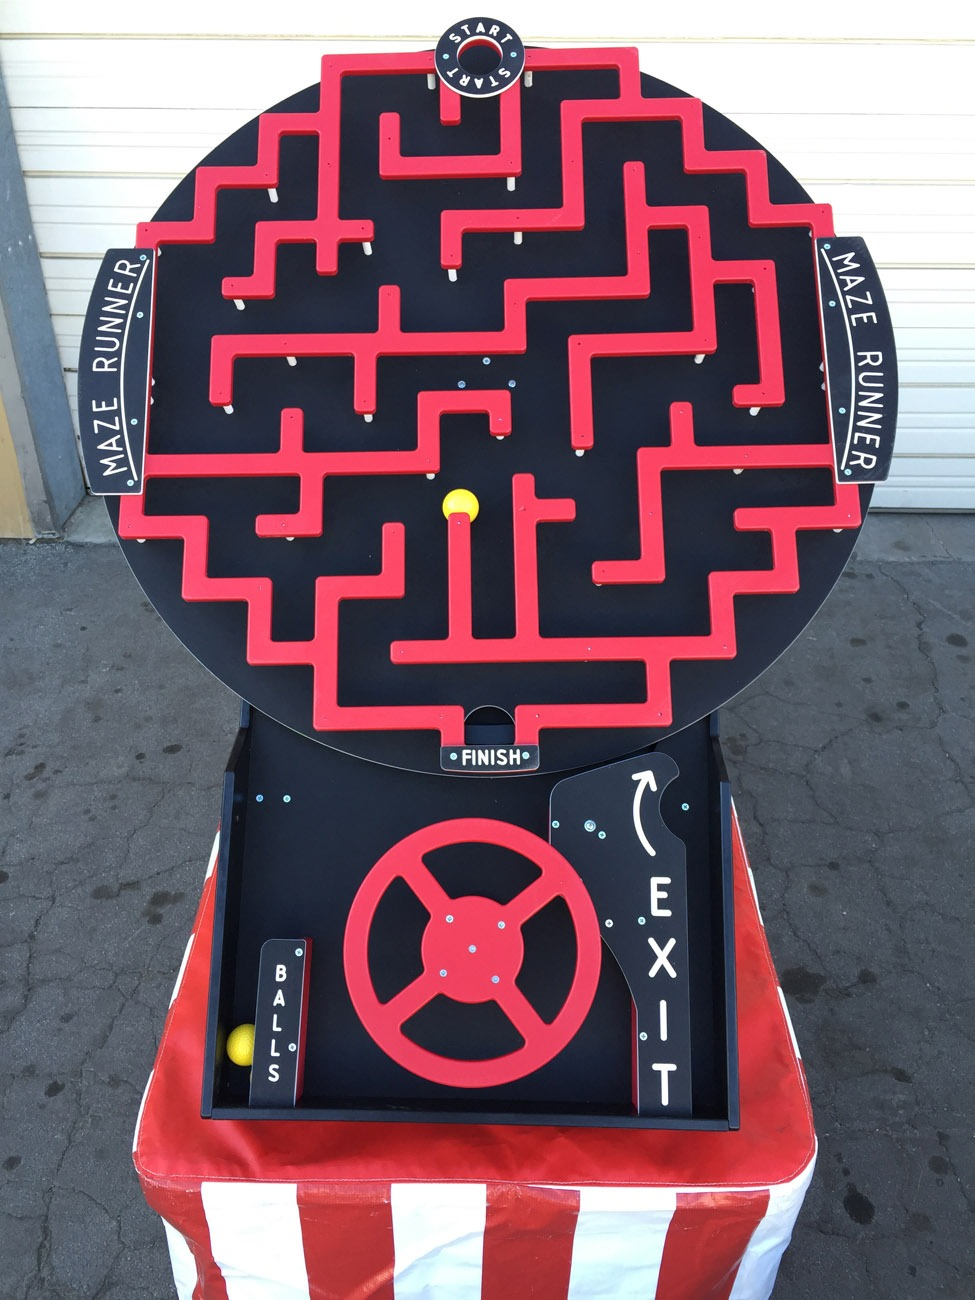 Crazy Maze Driving Game Lets Party